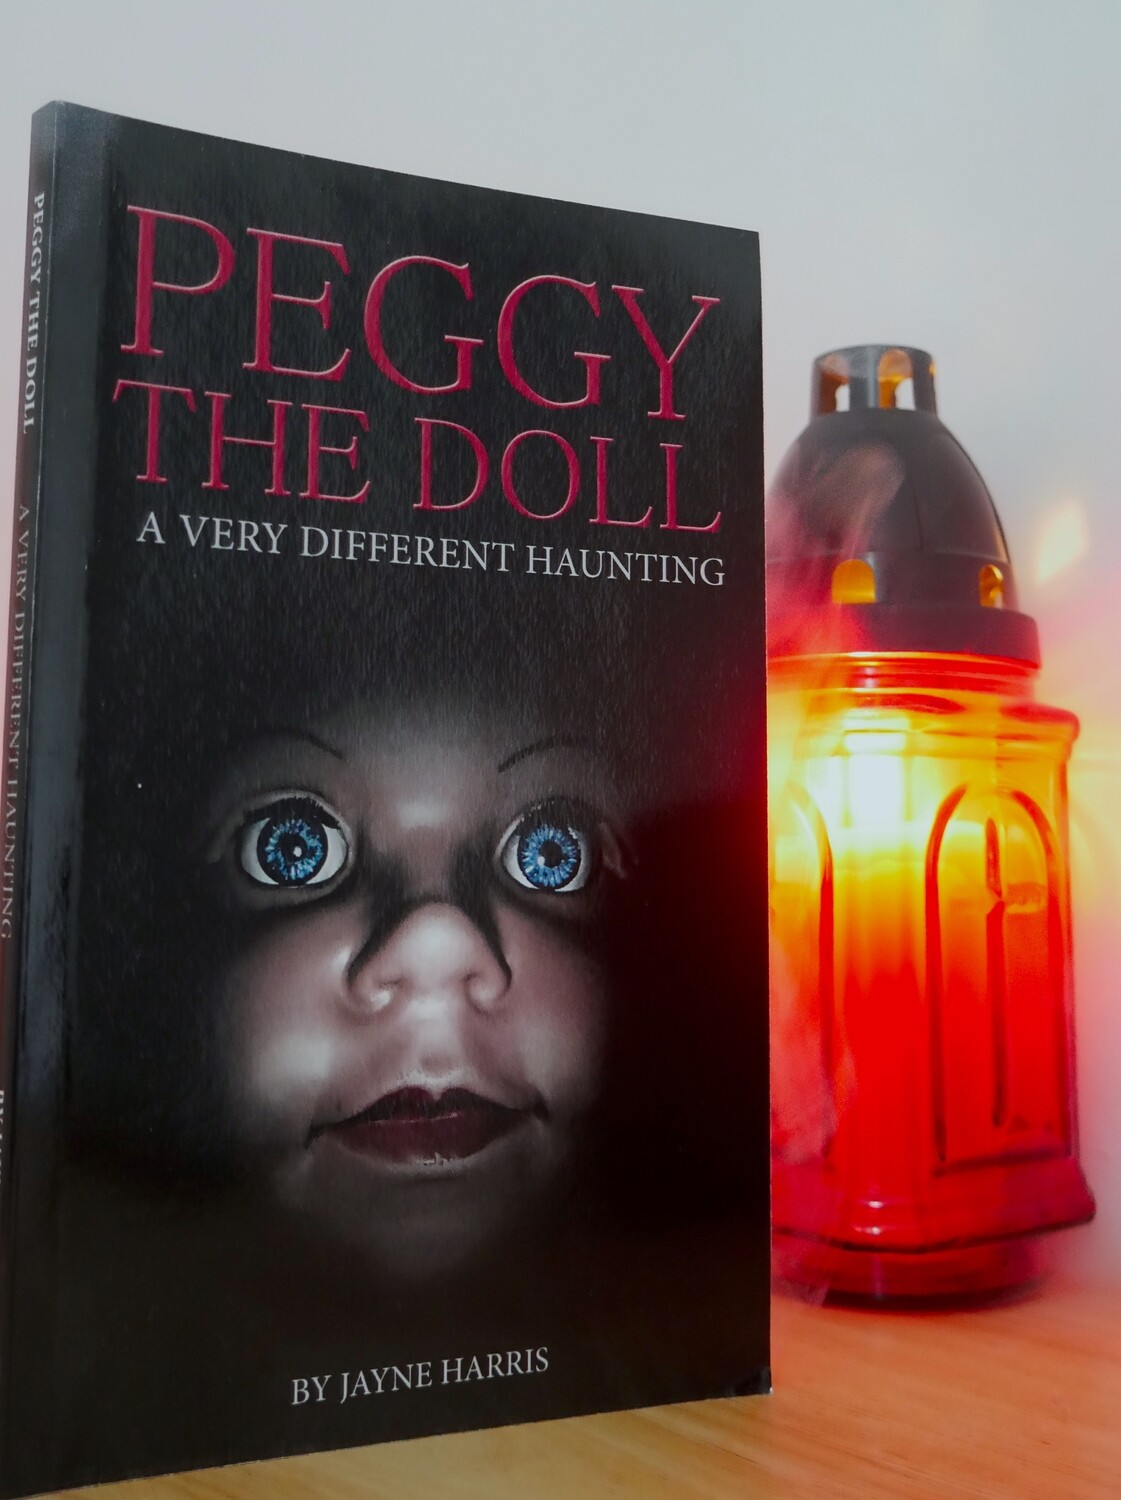 Peggy The Doll paperback - SIGNED COPY